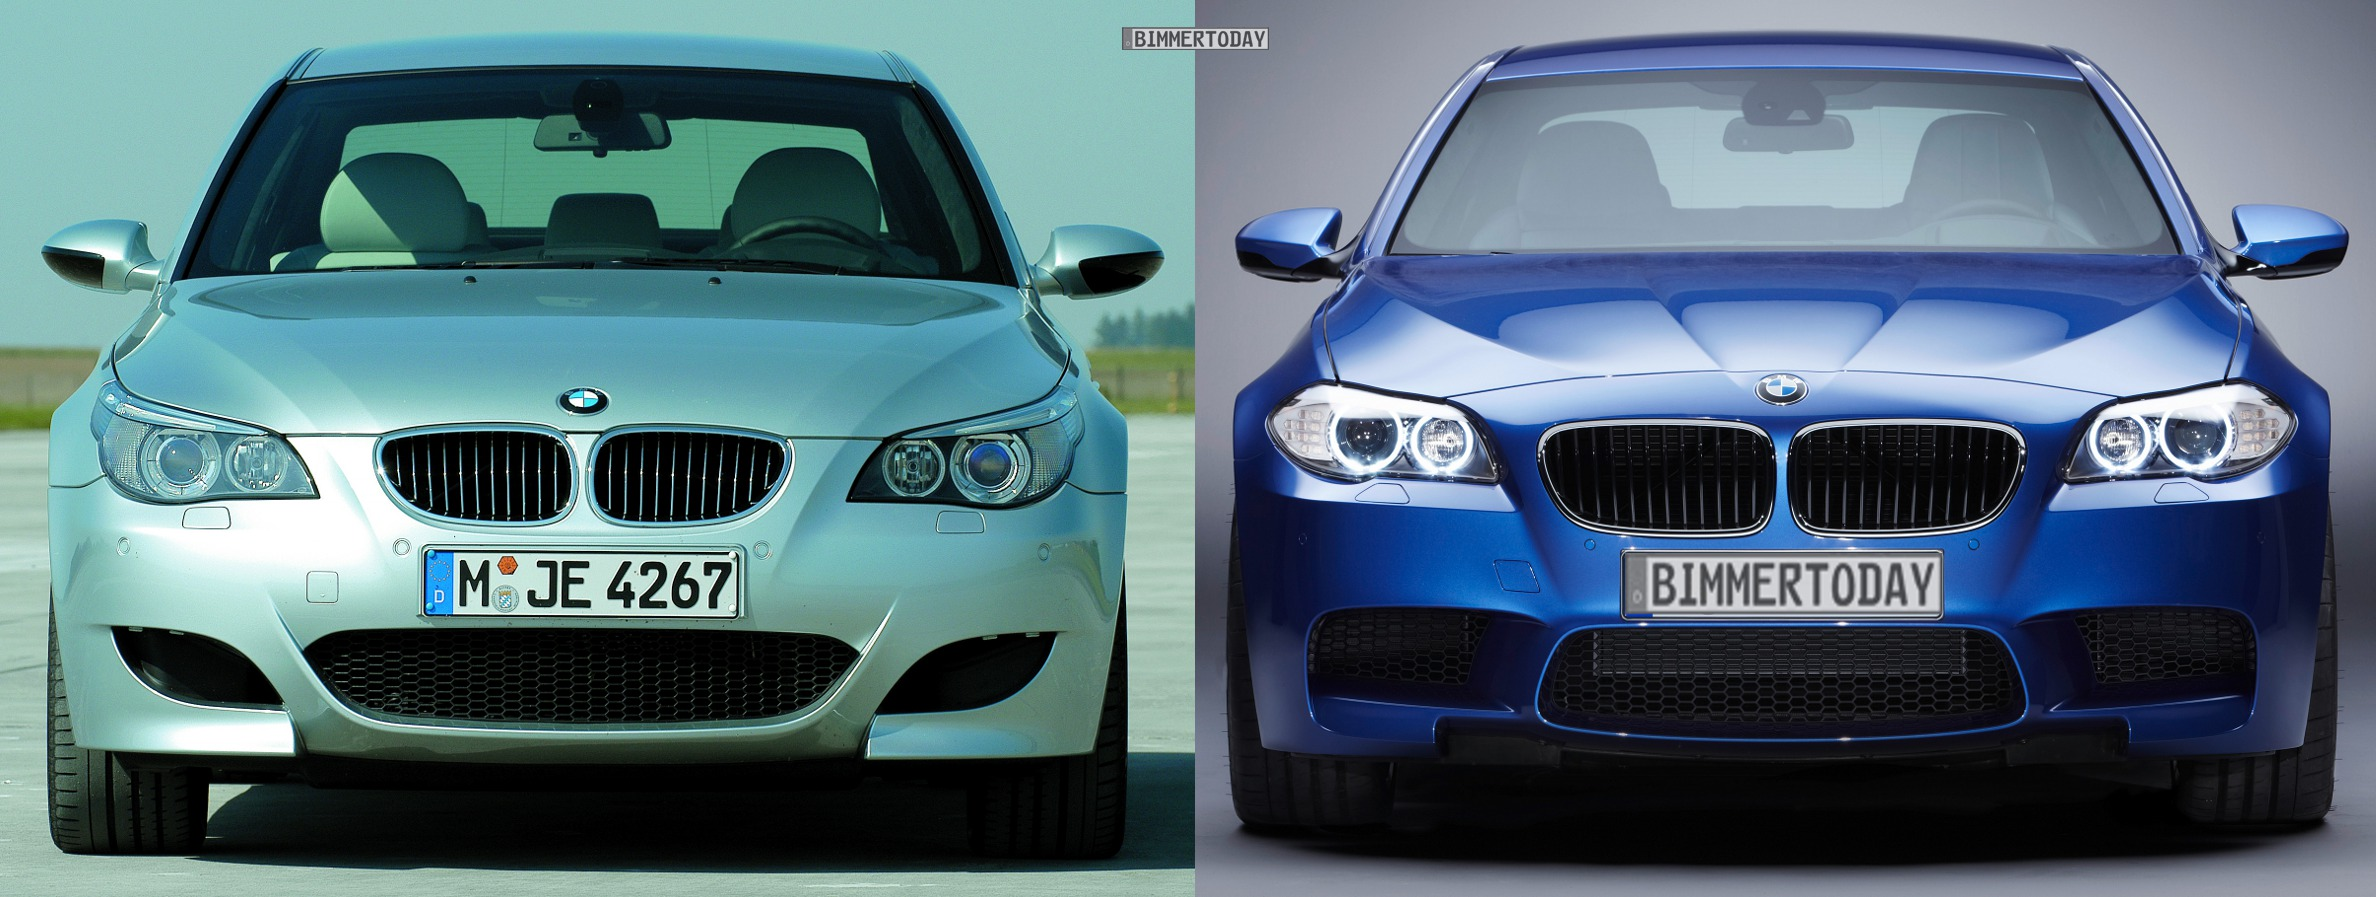 Video F10 Bmw M5 Vs E60 M5 On A Straight Line